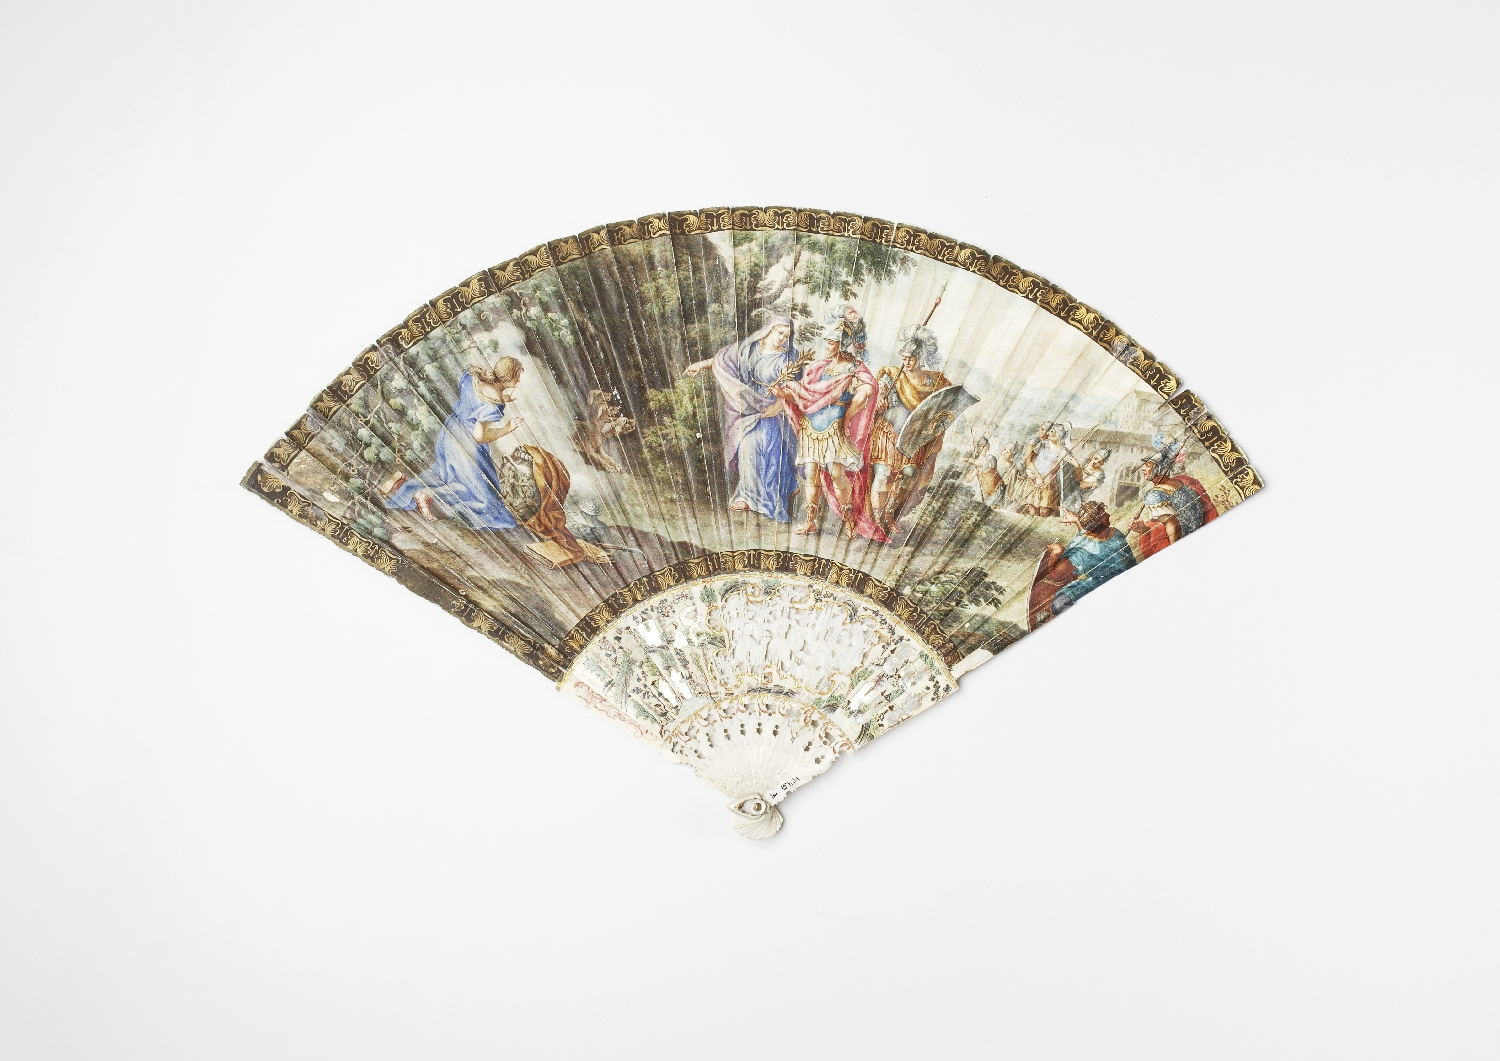 Fan with mythological motif, France or Italy, 2nd half 18th c., parchment, painted, ivory, inv. no. 157-31